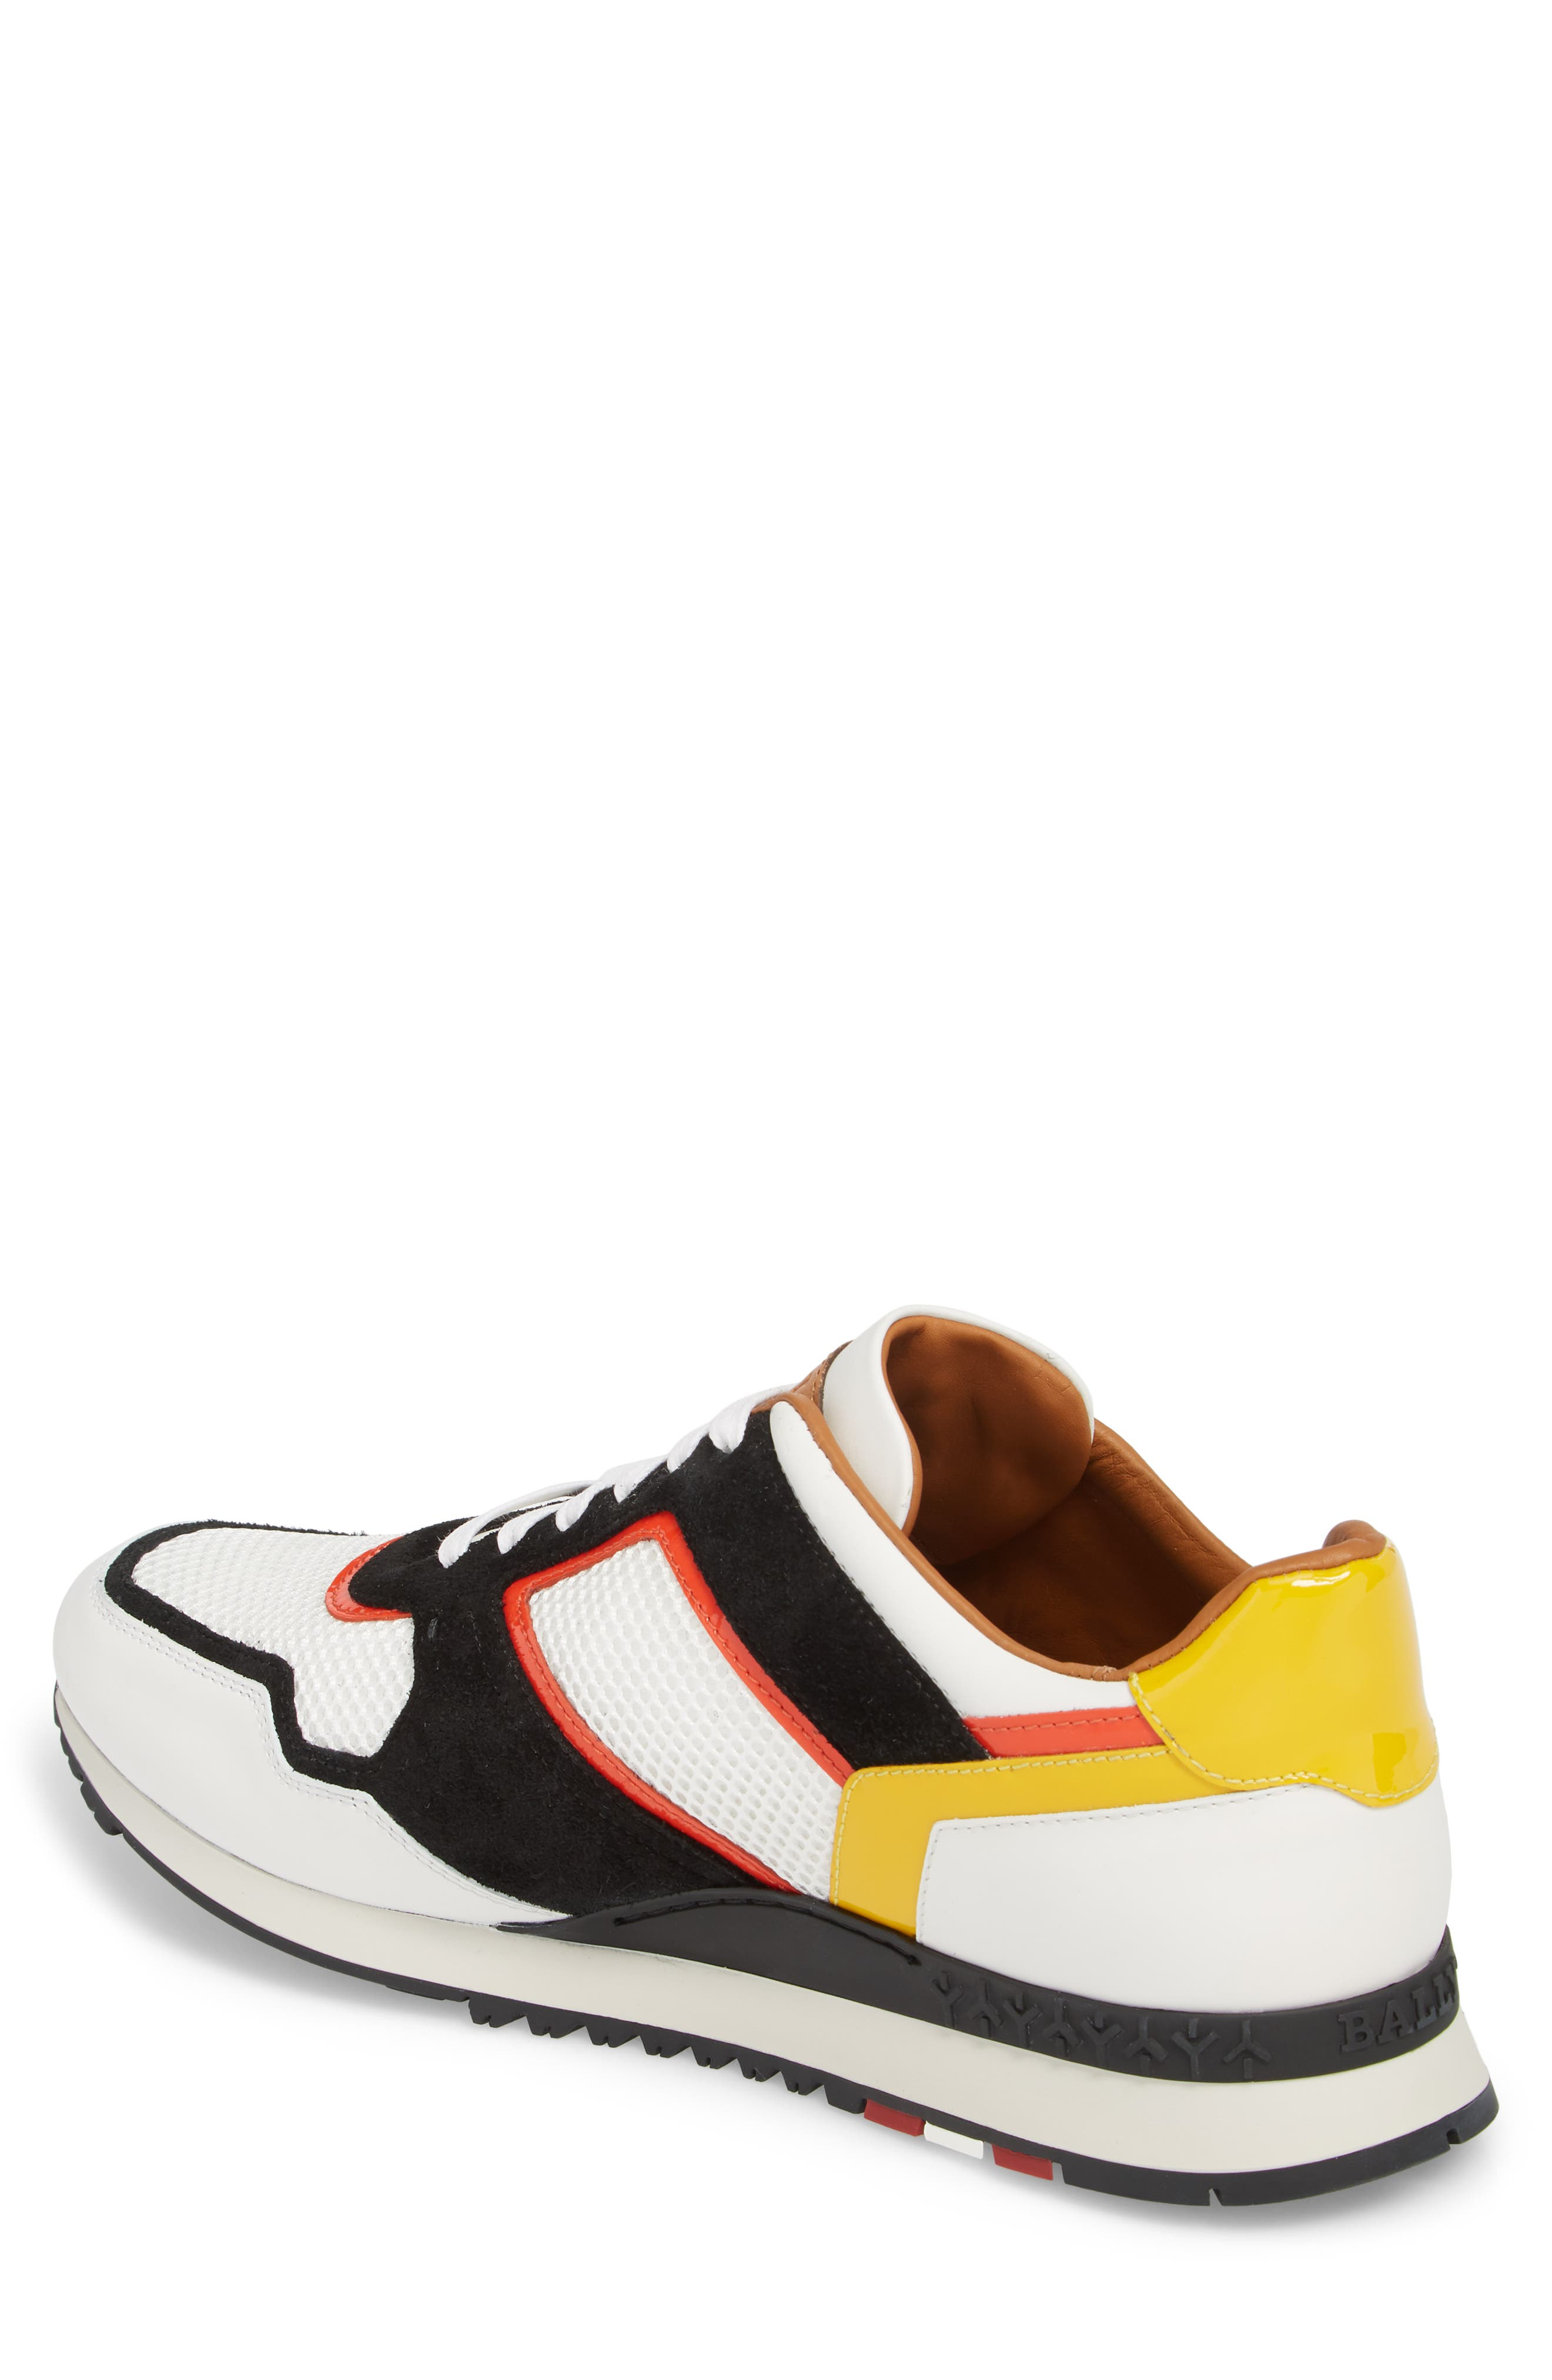 Astreo Low Top Sneaker,                             Alternate thumbnail 2, color,                             109